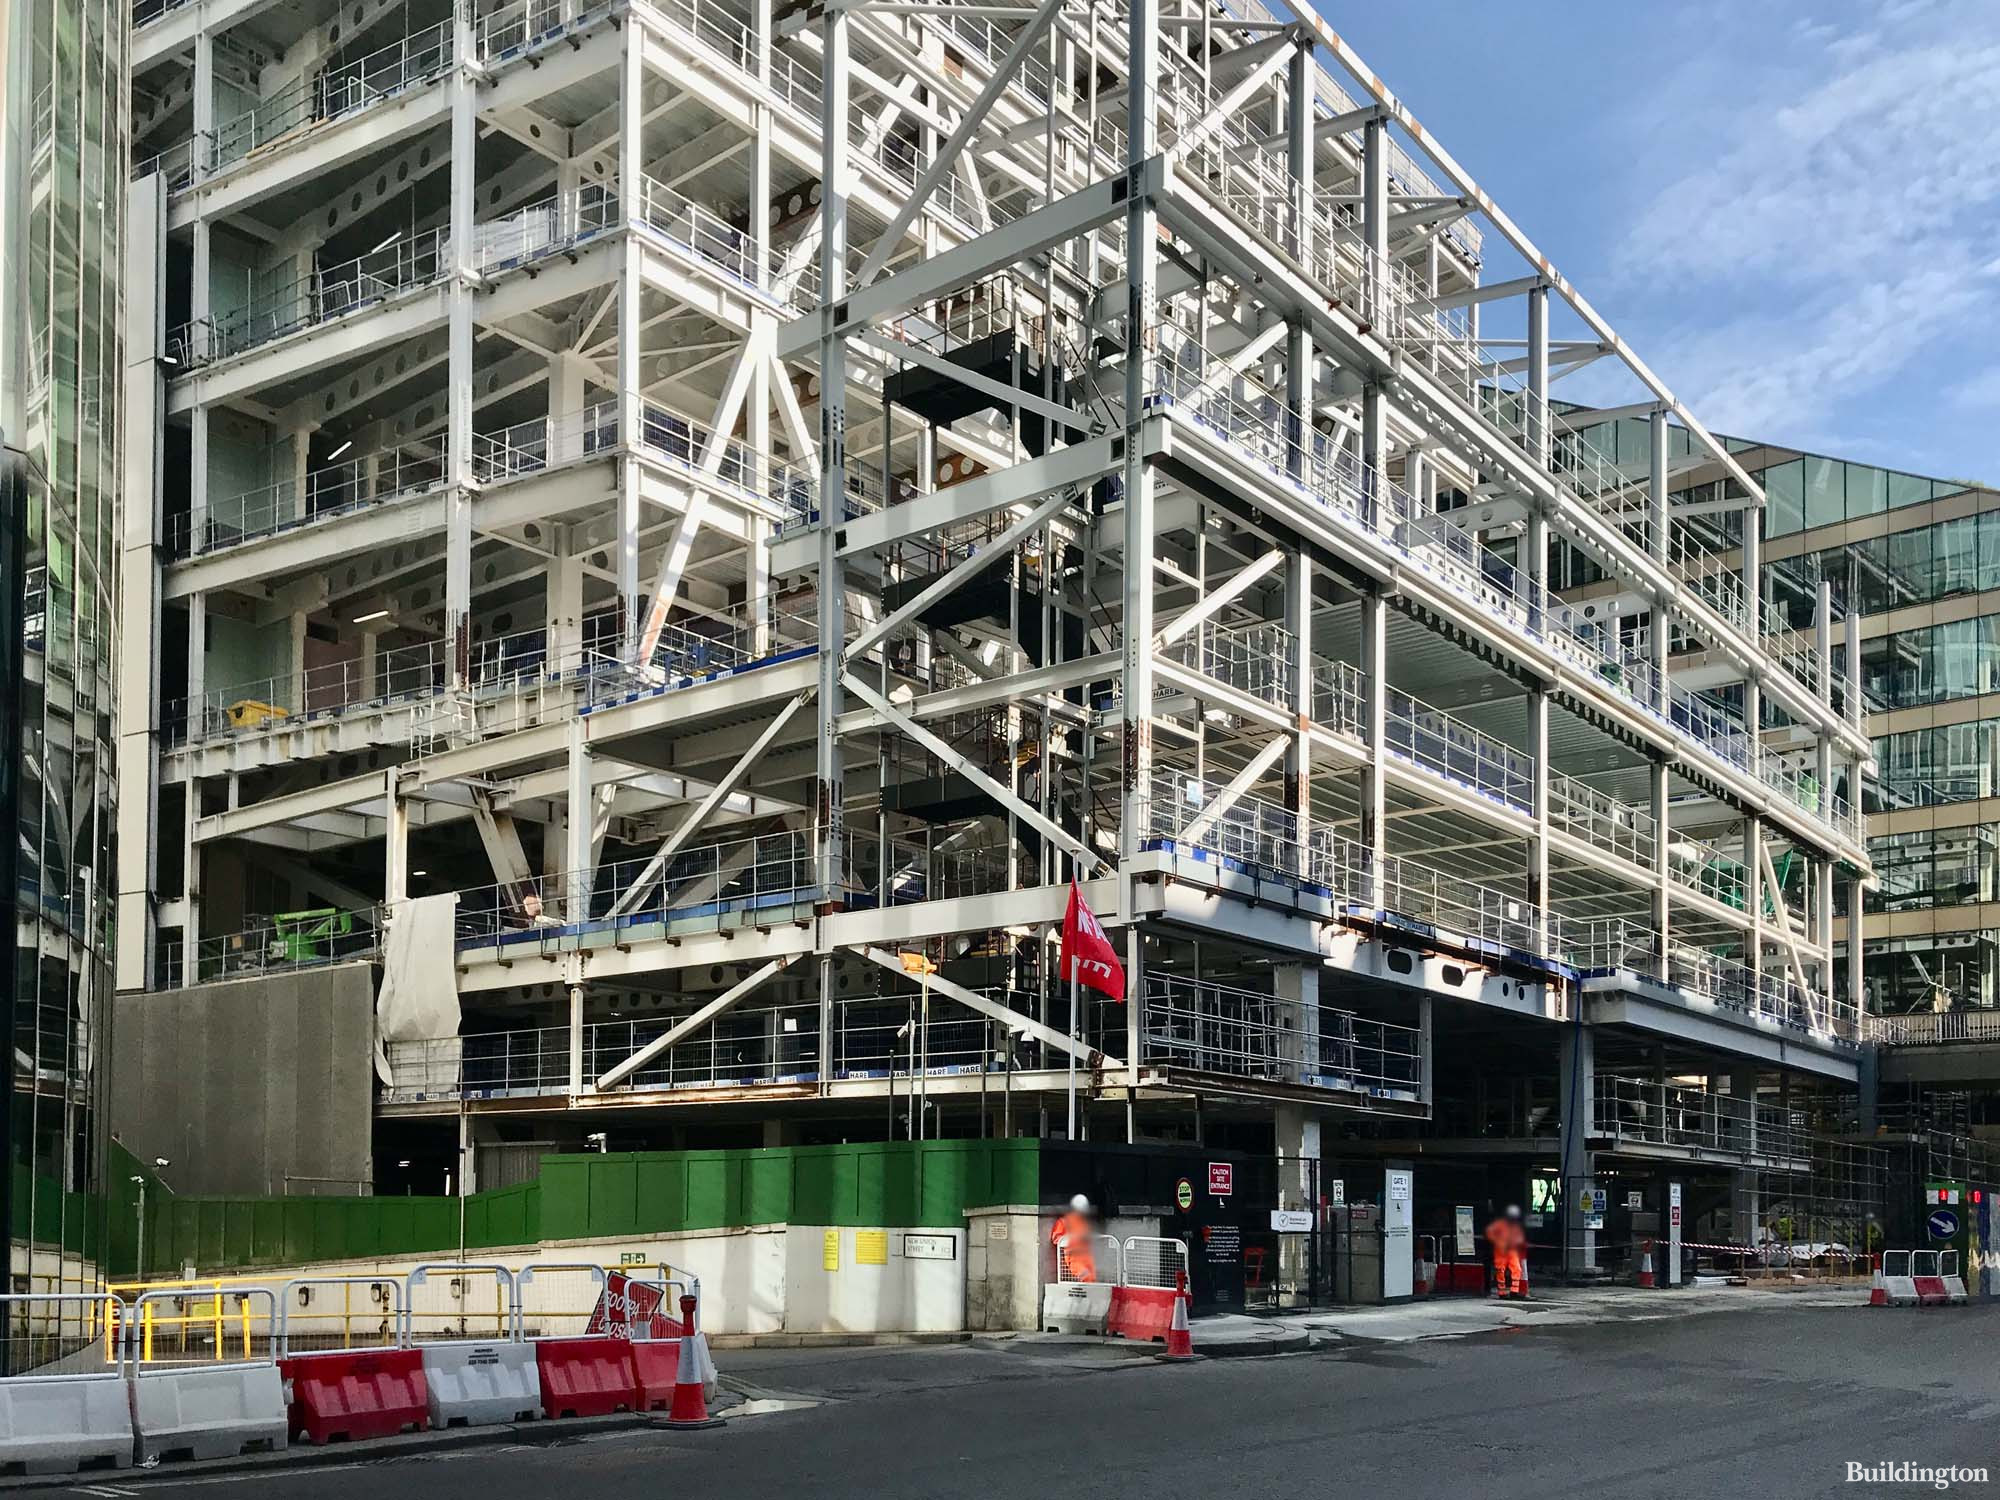 21 Moorfields office building designed by Wilkinson Eyre Architects under construction in the City of London EC2.